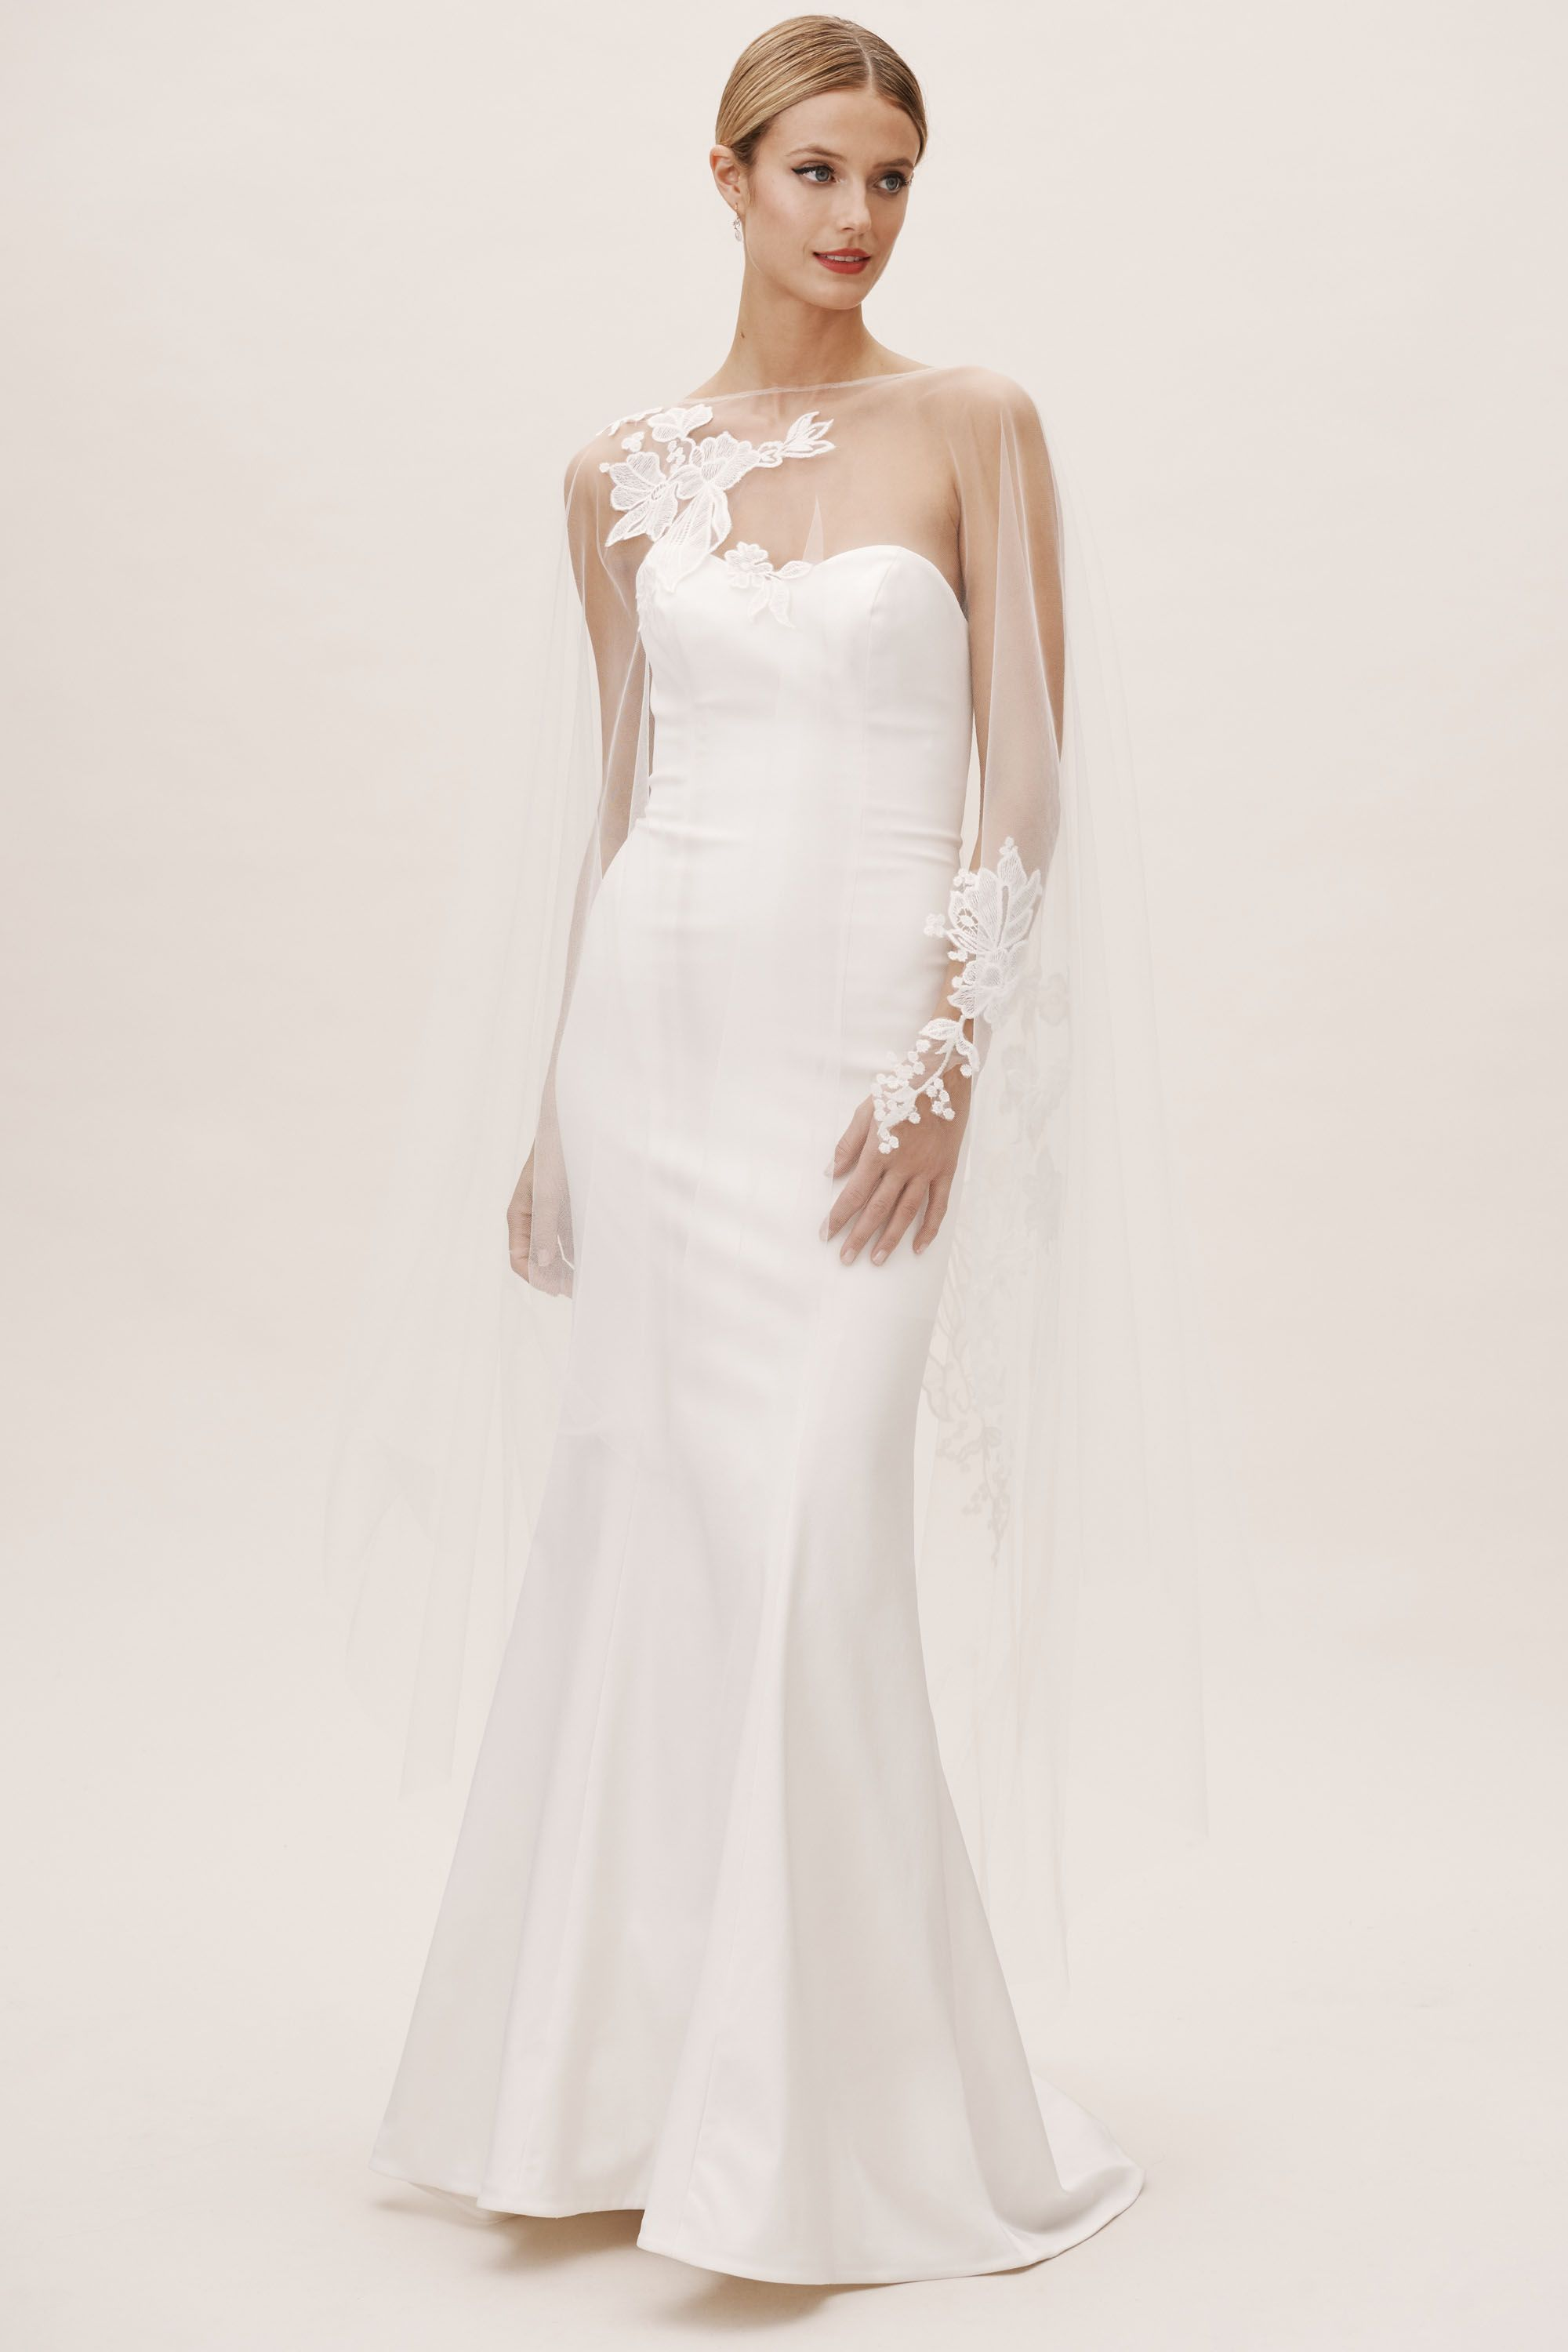 separation shoes 9cc41 2014a BHLDN's Amsale Amsale Inaya Cape in Ivory